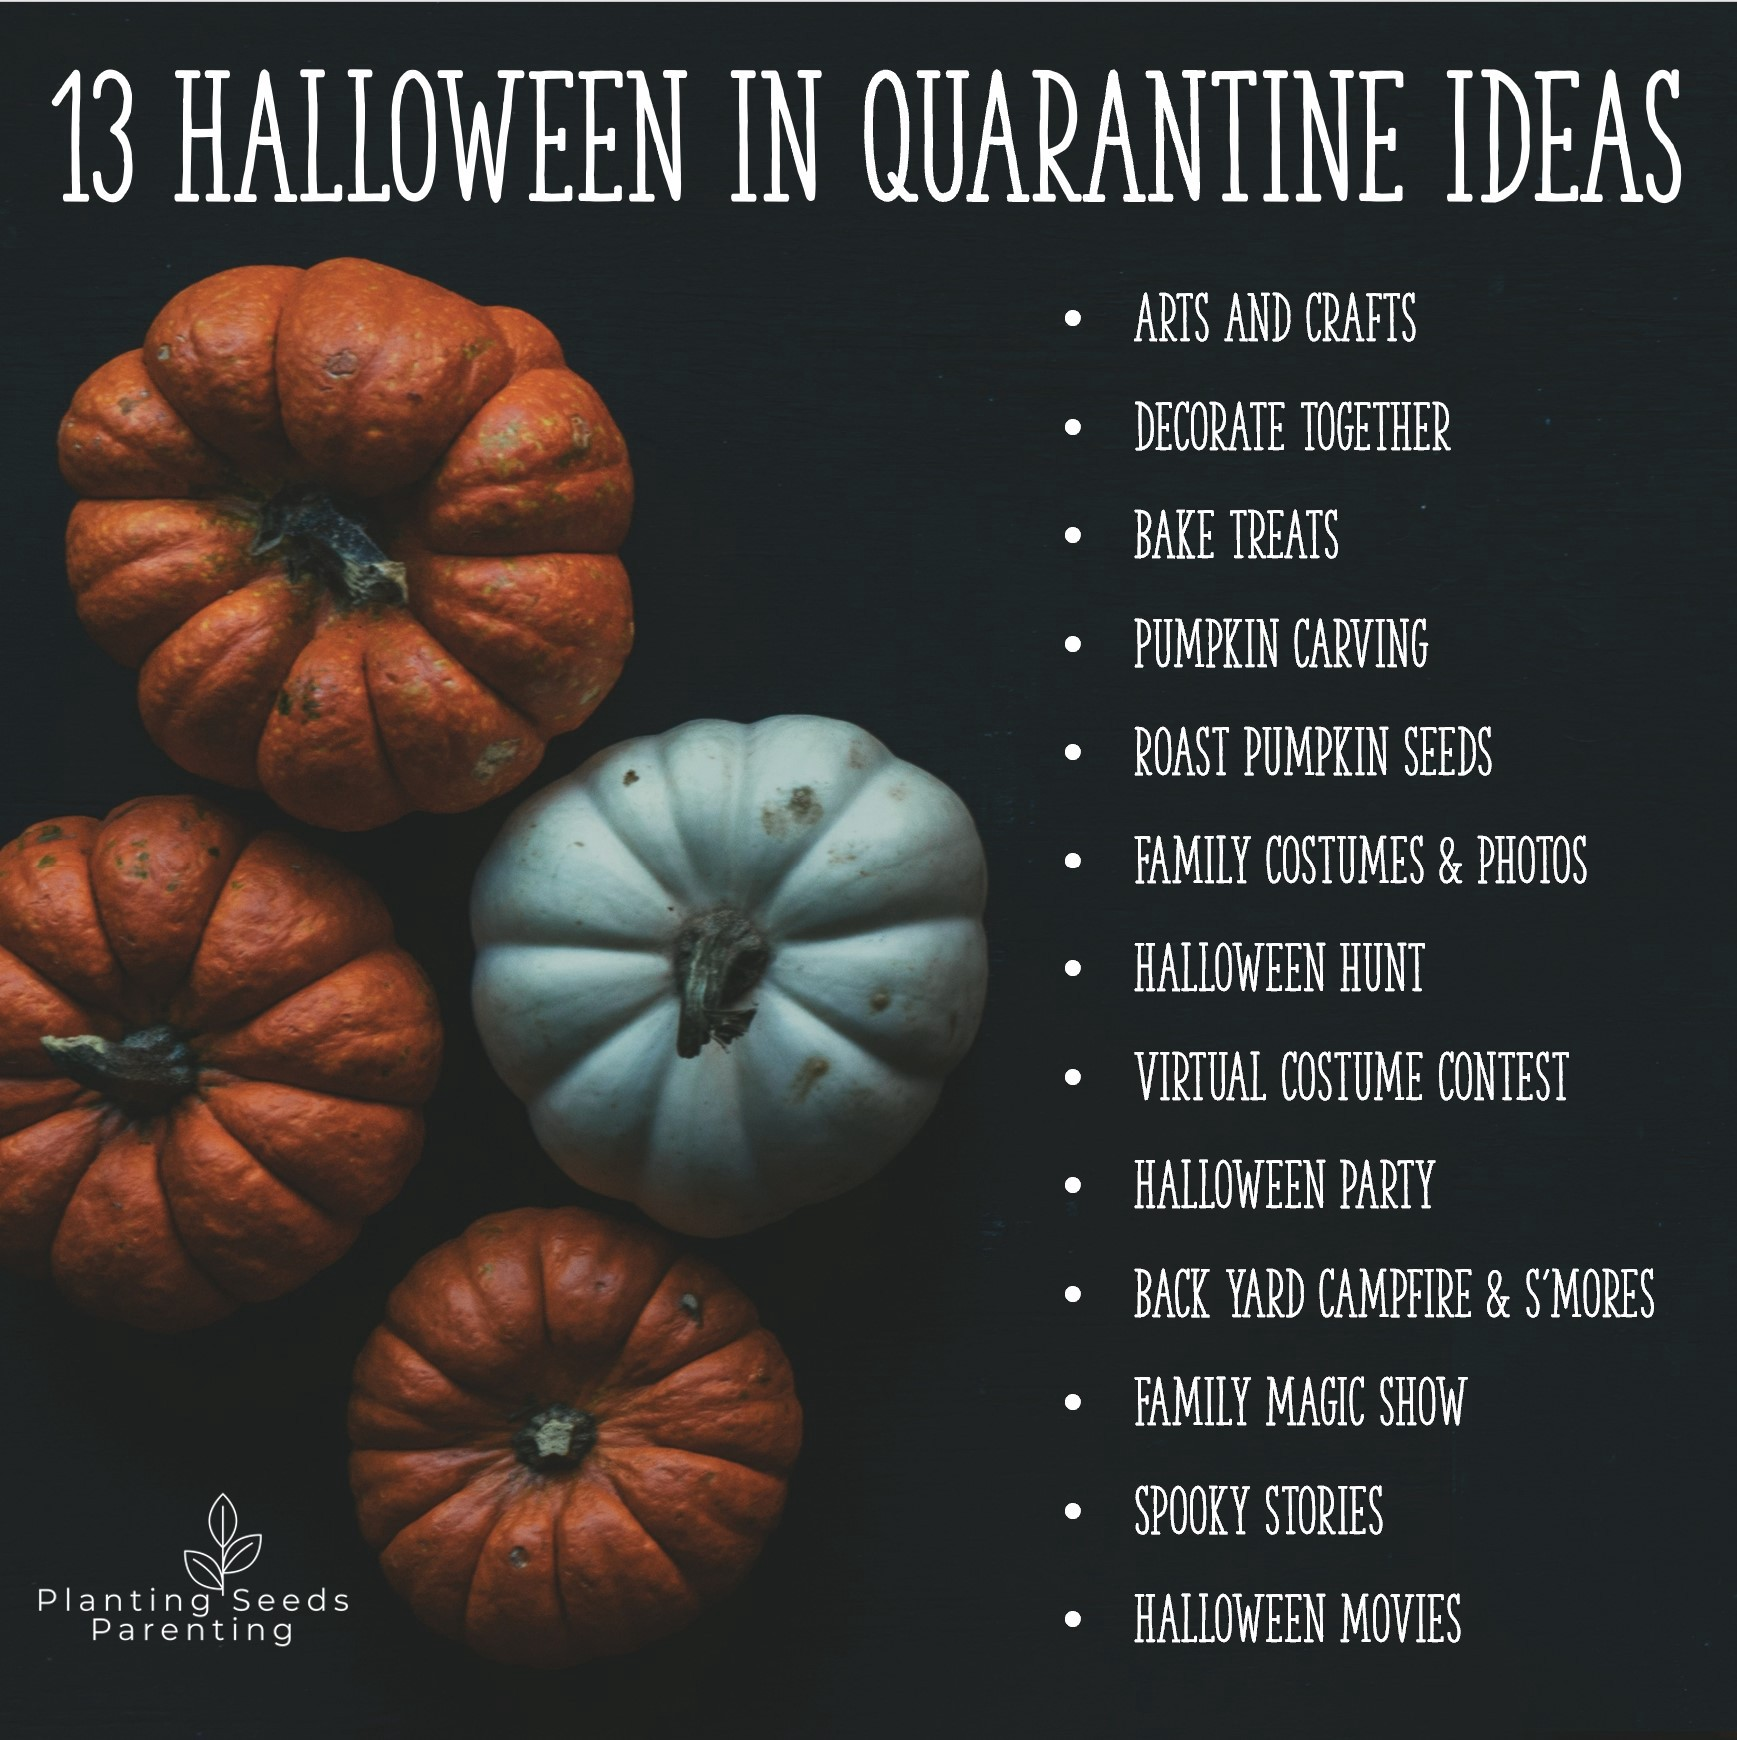 2020 Halloween Parents Guide A Parent's Guide to Halloween in Quarantine | by Planting Seeds